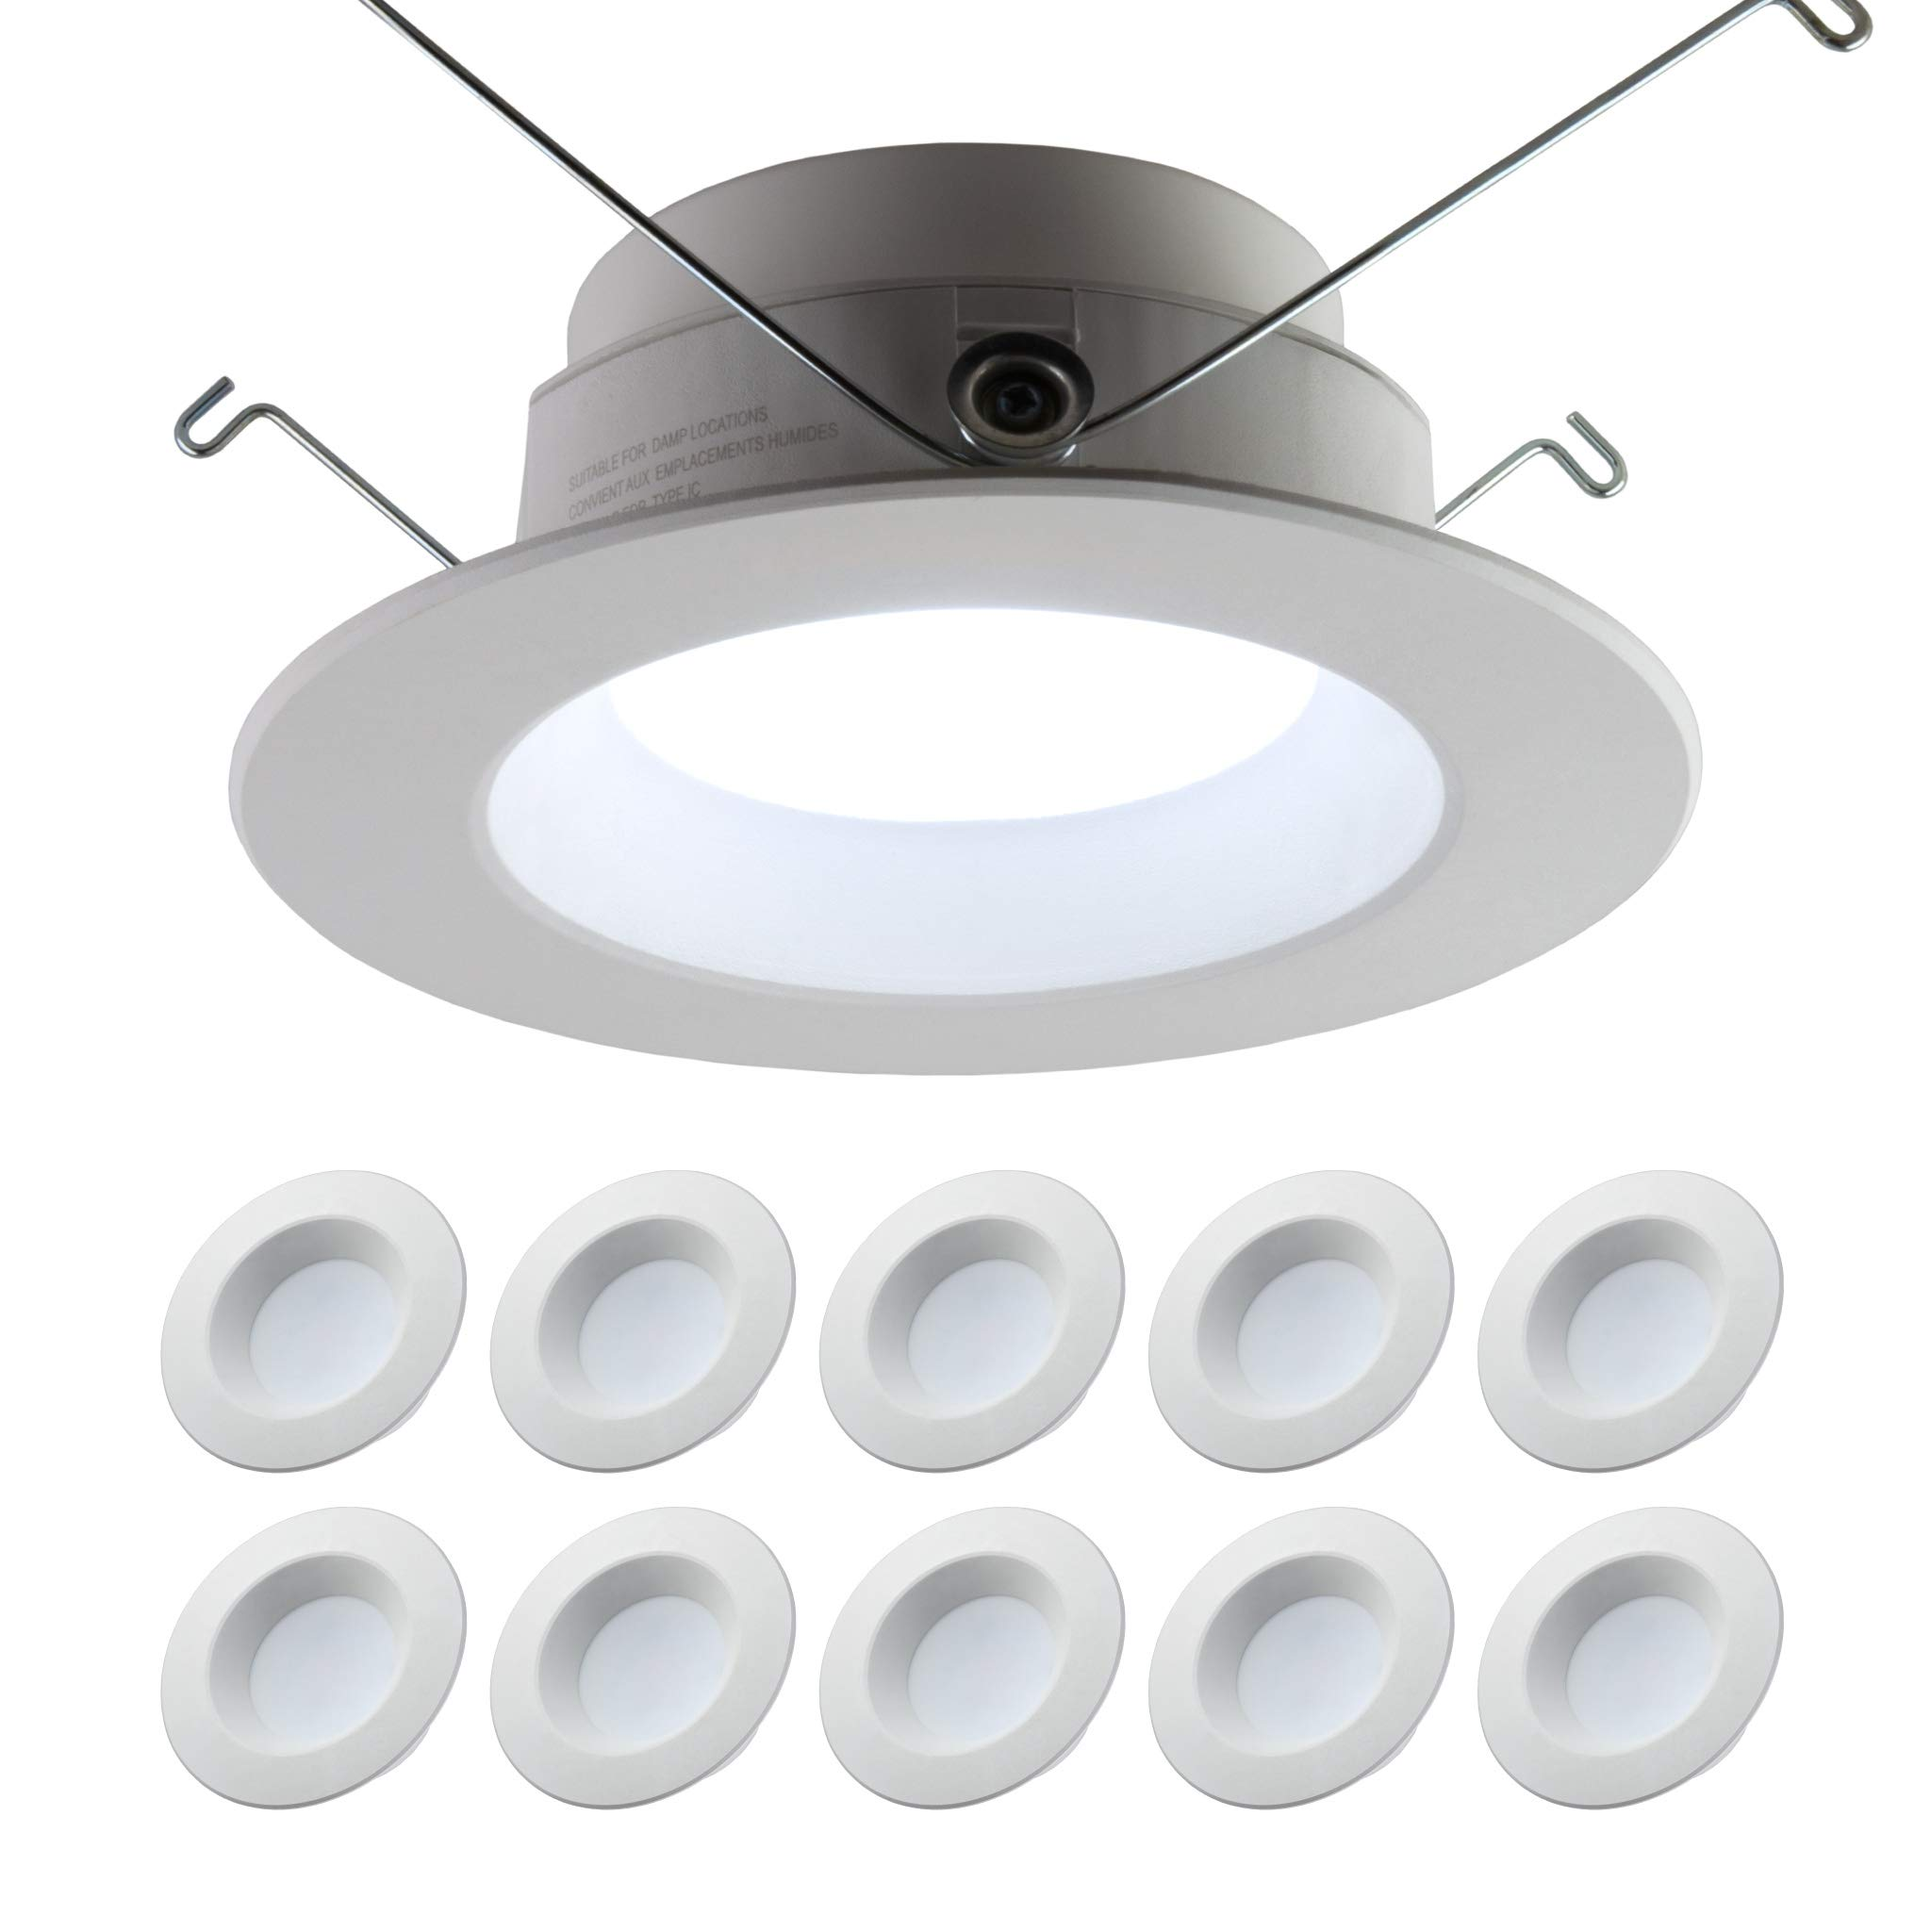 5/6'' inch Dimmable LED Downlight (10 PACK) 15W= 120W Replacement; 1100 Lumens; 120V; CRI>90; JA-8 Compliant, Energy Star, UL Listed; Easy Install Into Exisiting 5/6'' Recessed Can (Daylight 5000K)